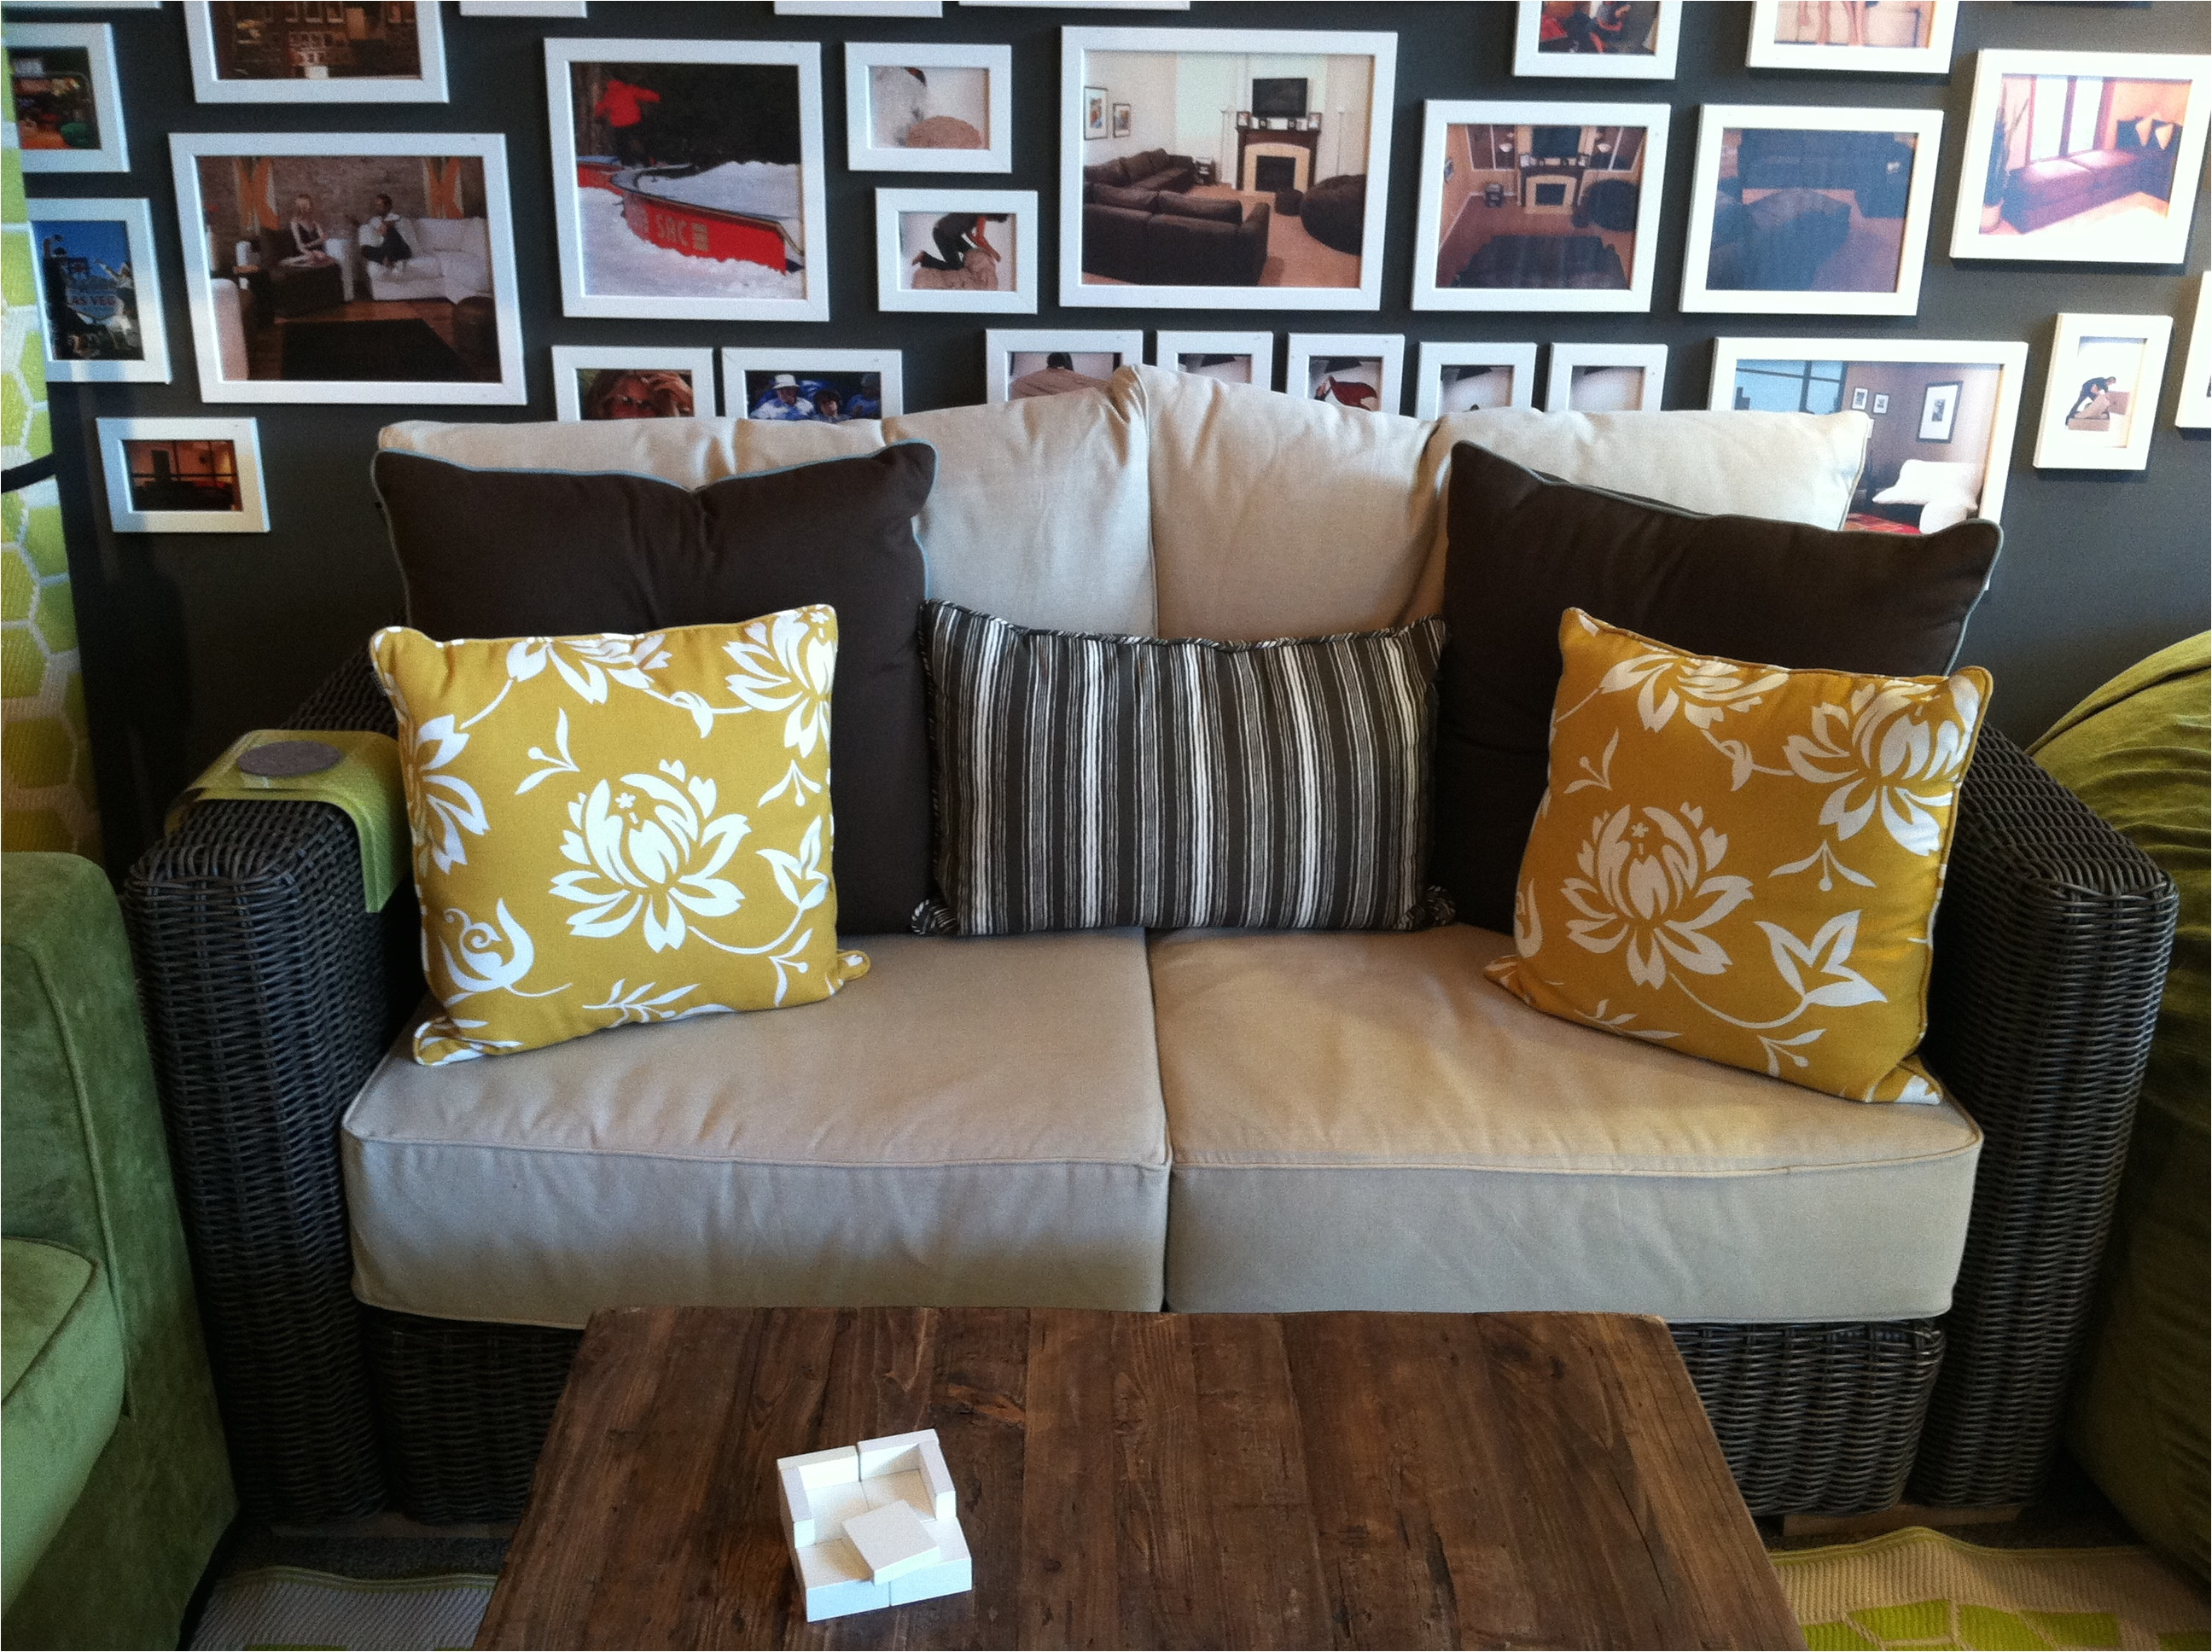 my pillow store lincoln ne fresh furniture of 16 elegant my pillow store lincoln ne